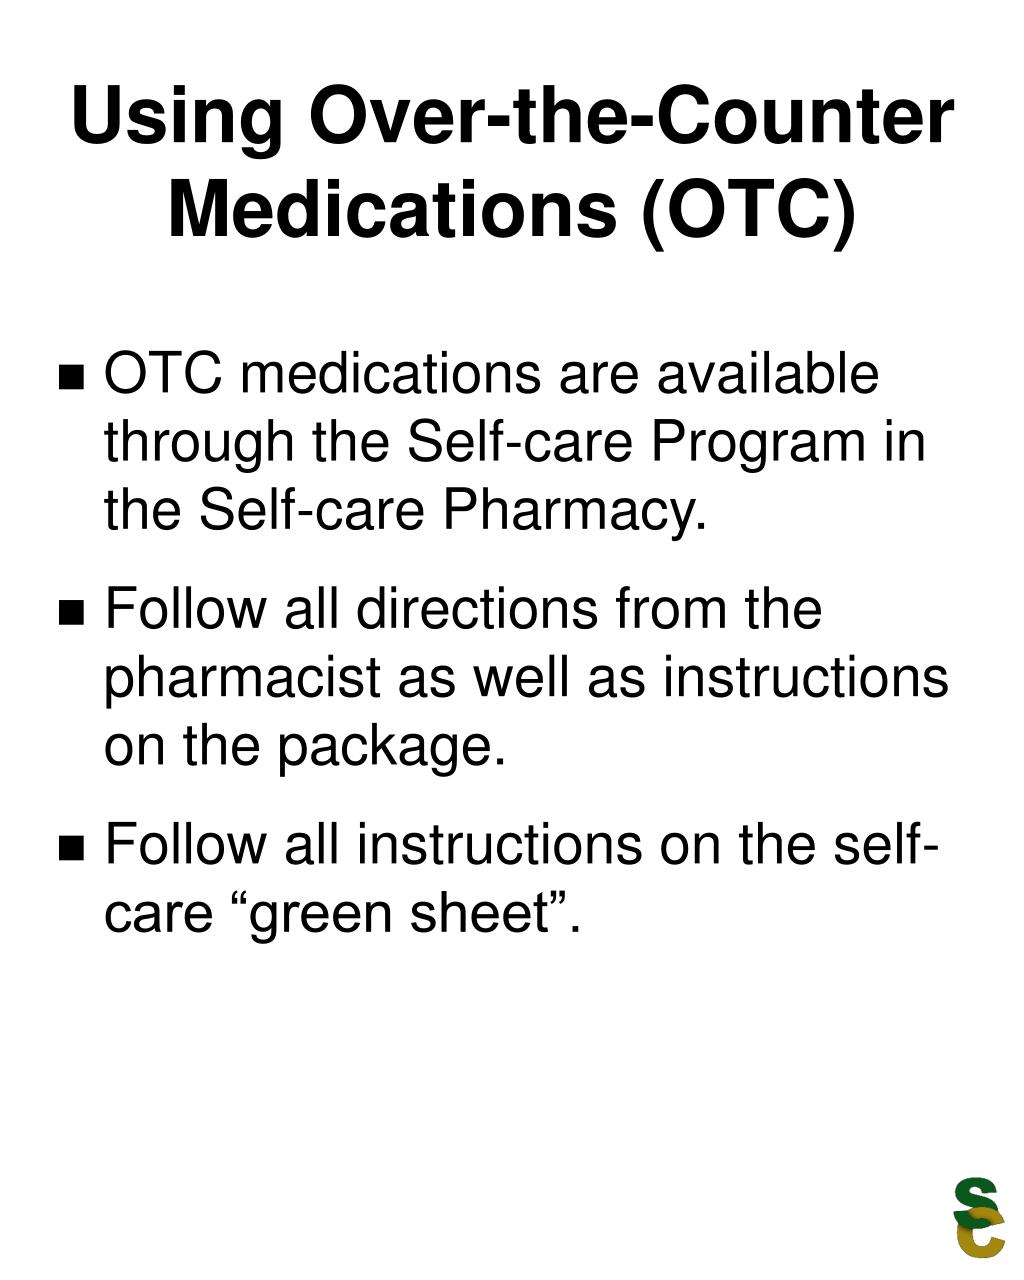 Using Over-the-Counter Medications (OTC)